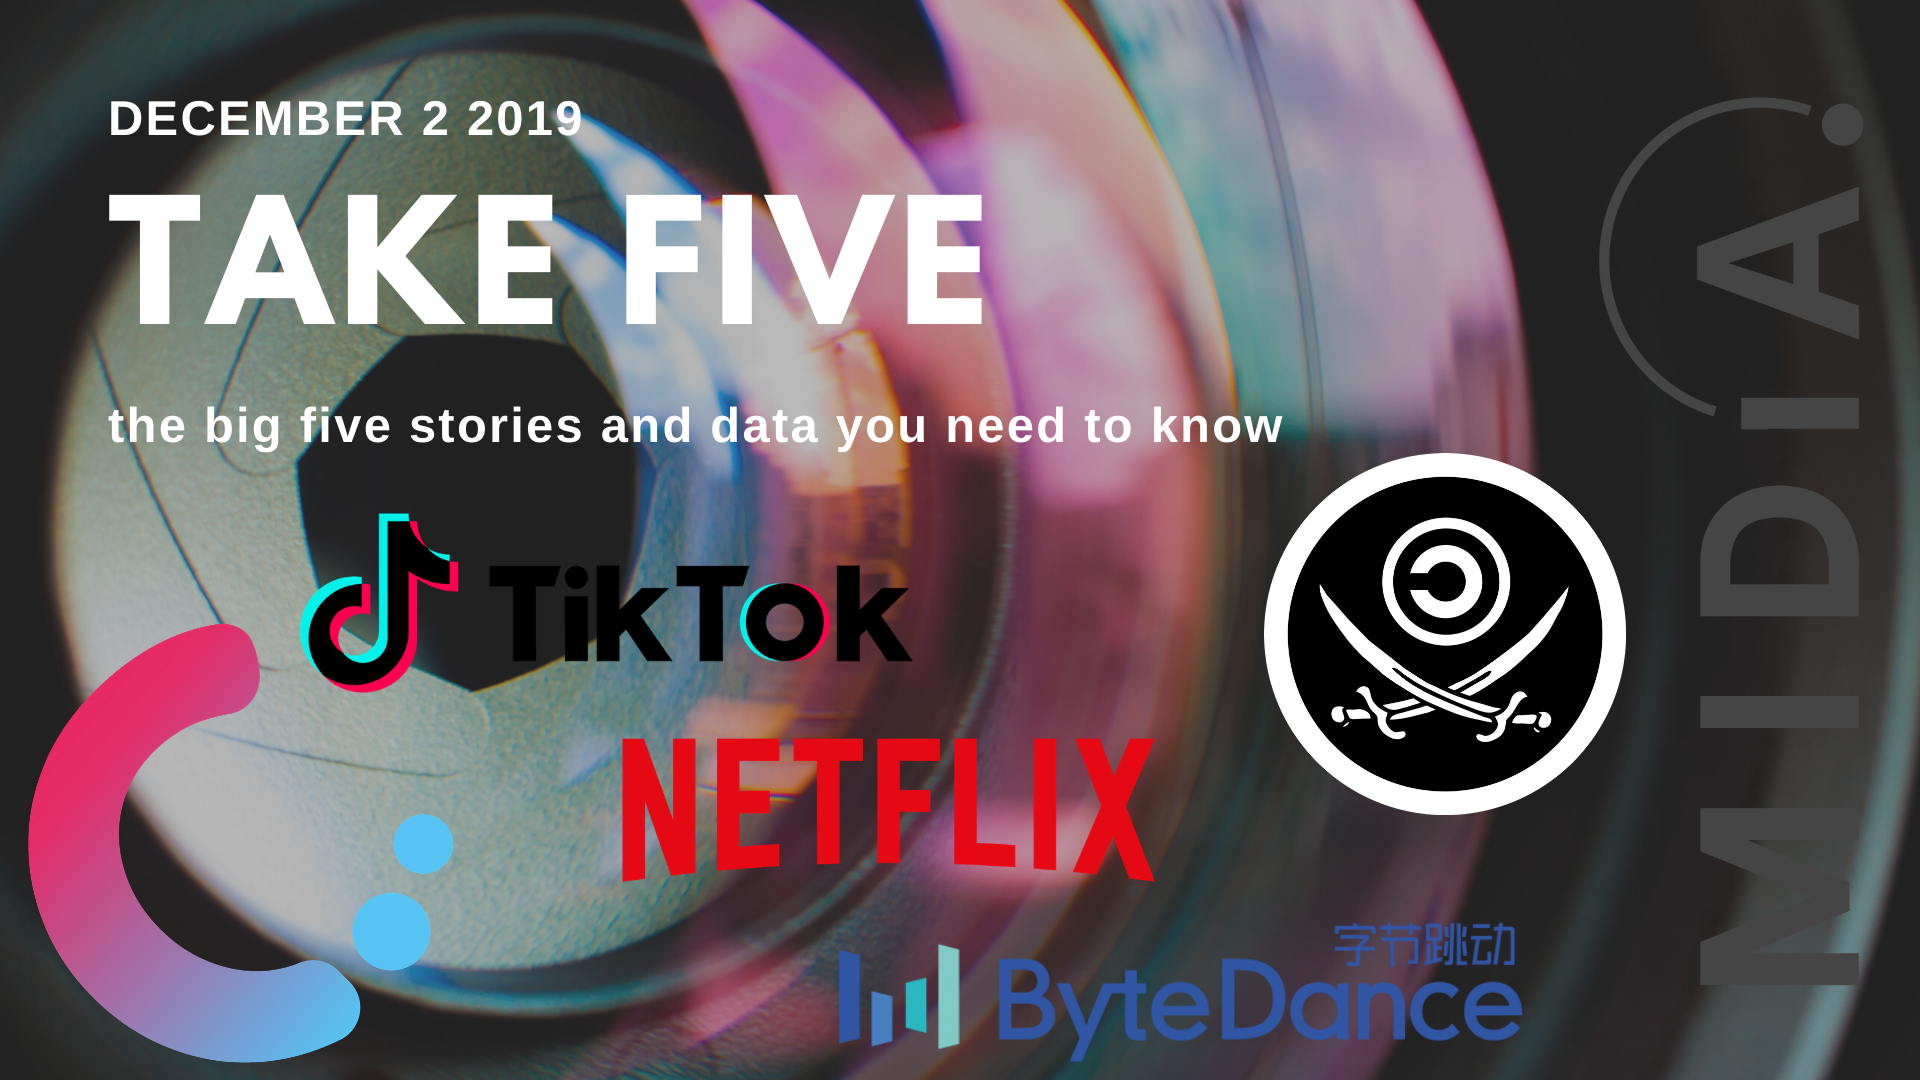 Cover image for Take Five (the big five stories and data you need to know) December 2nd 2019